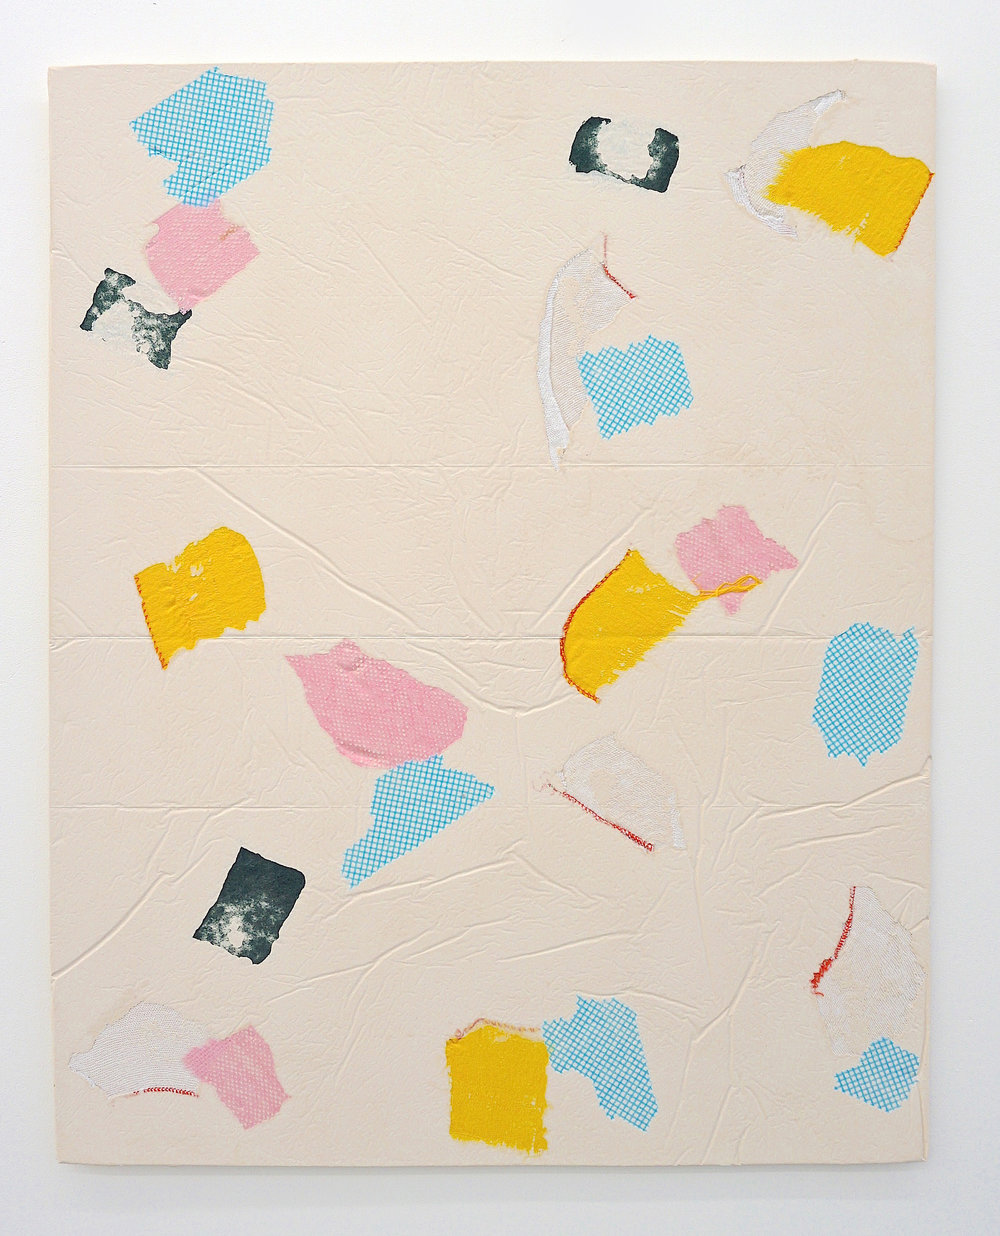 Domestic Bliss (yellow, blue, green, pink) | Composite, Mixed Media | 100 x 80 cm